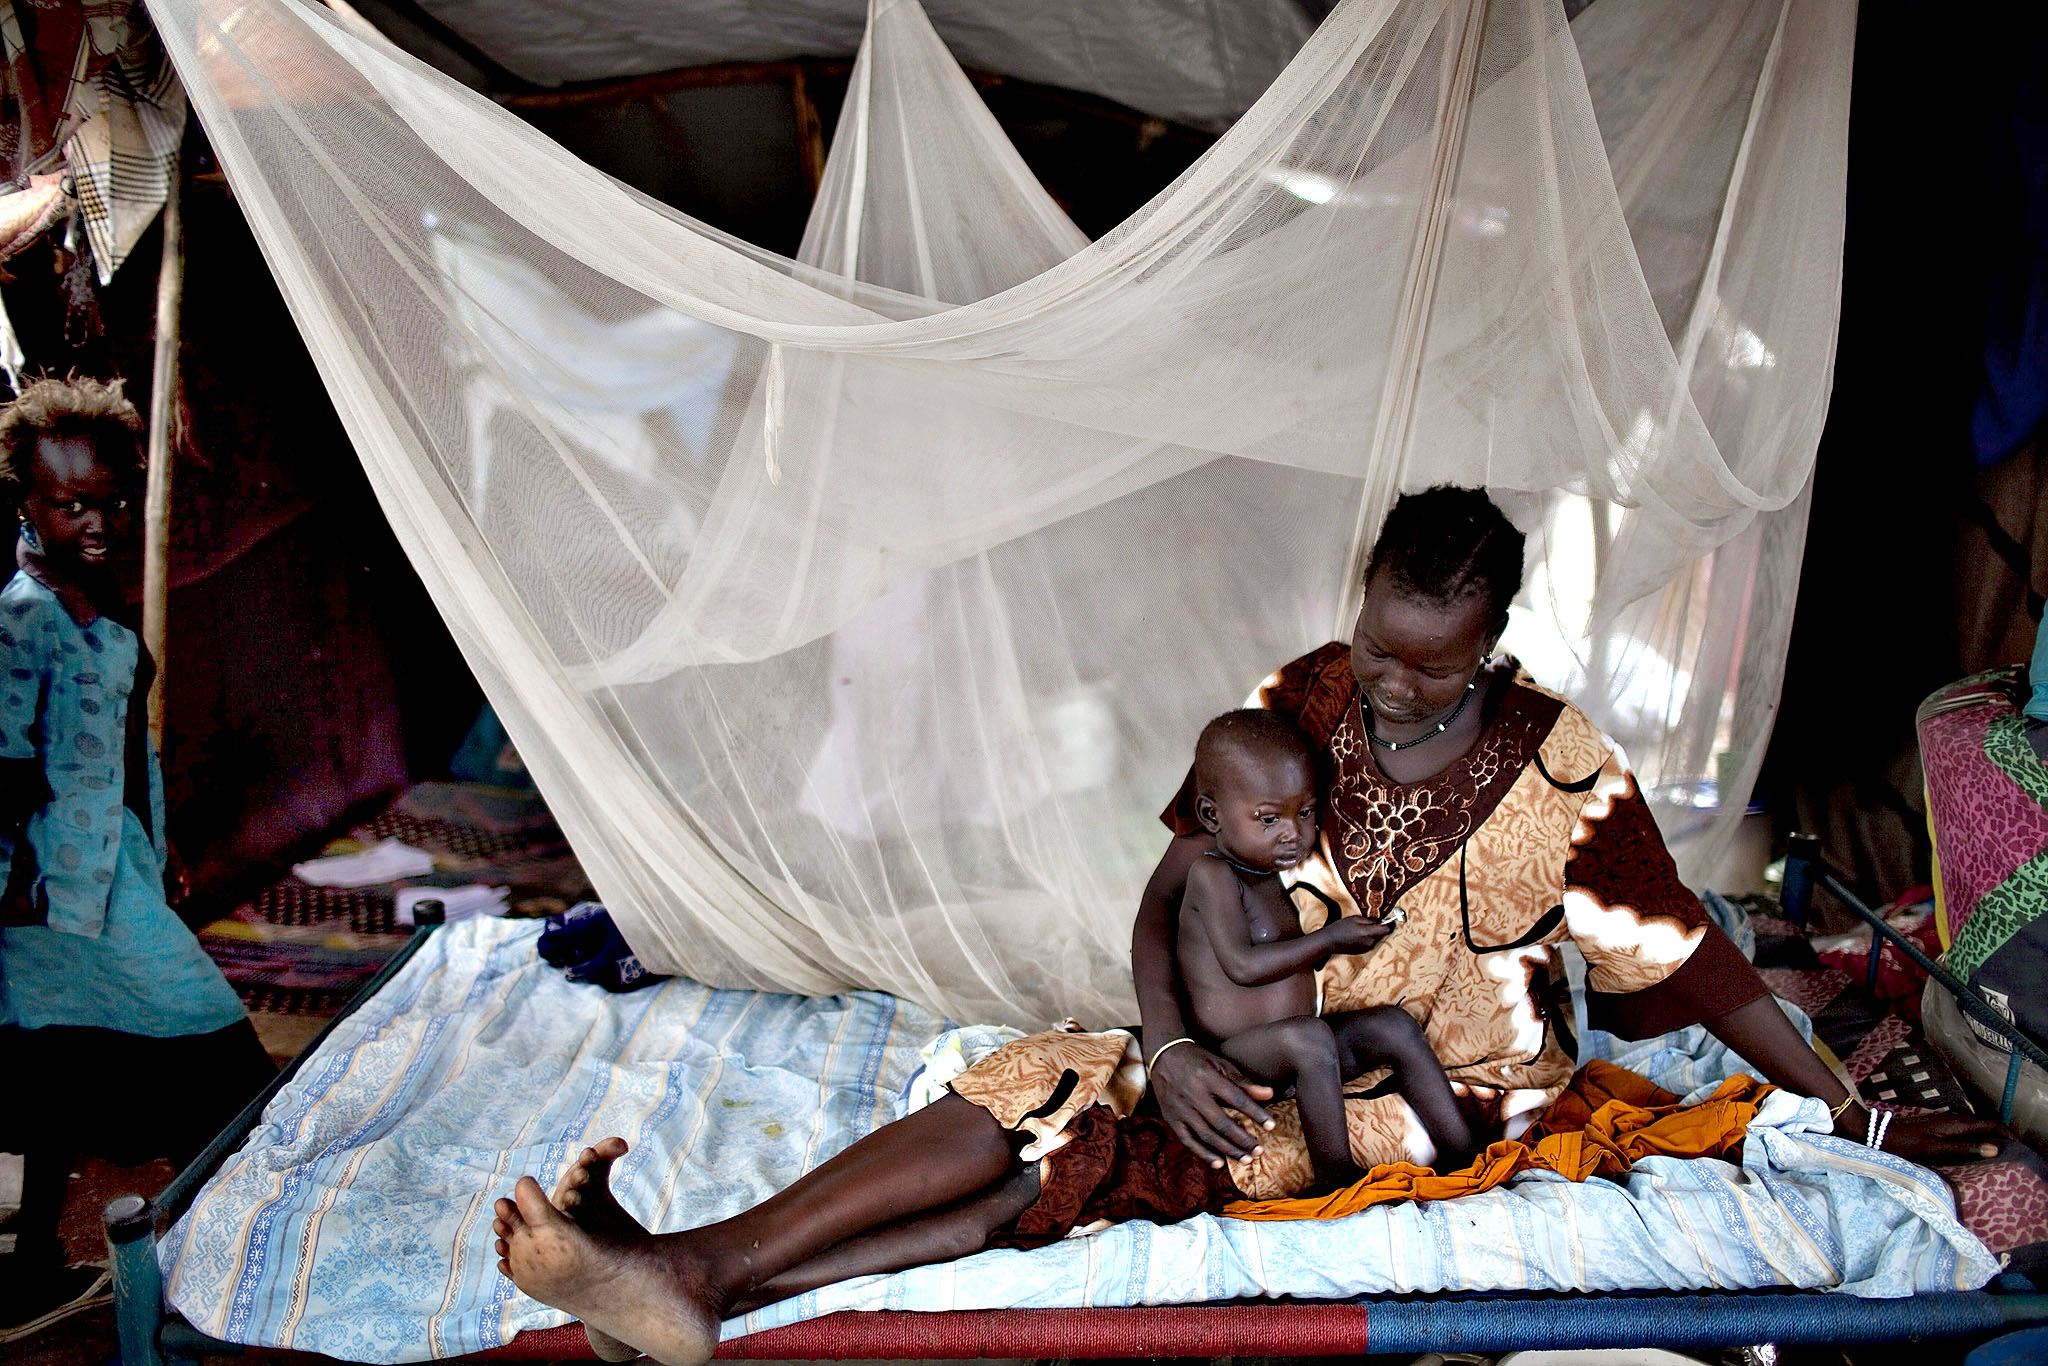 A South Sudanese woman rests on a bed together her son in a IDP camp for the Nuer ethnic group inside the UNMISS compound in Bor, South Sudan, on February 27, 2014. War crimes have been committed by all sides in conflict-wracked South Sudan, Human Rights Watch said Thursday, reporting widespread atrocities in weeks of carnage in the world's youngest nation. Thousands have been killed and almost 900,000 forced from their homes by over two months of battles between rebel and government forces, backed by troops from neighbouring Uganda.